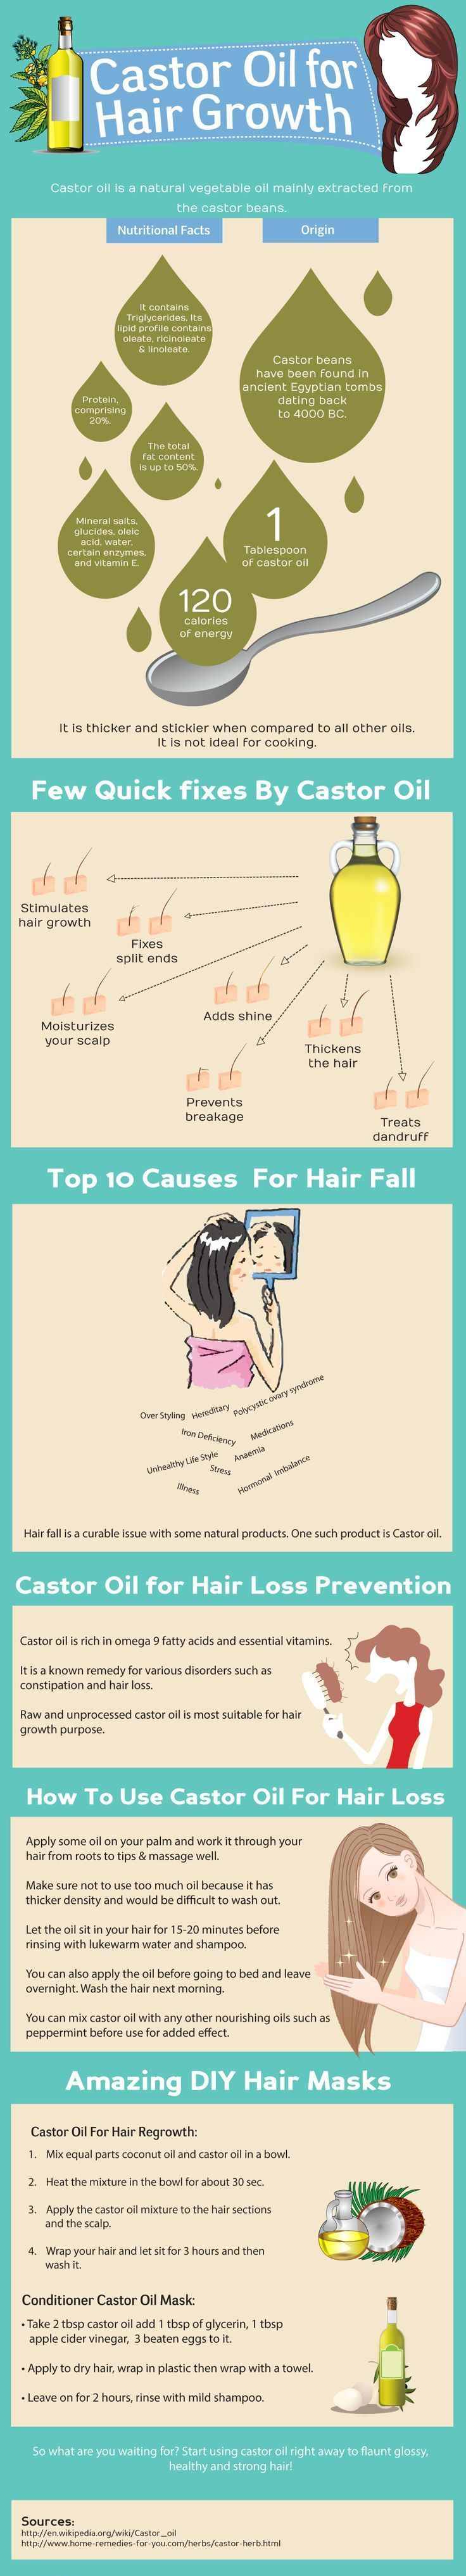 Finding the Roots of Hair Loss Hair loss in women can be triggered by about 30 different medical conditions, as well as several lifestyle factors. Sometimes no specific cause can be found. As a starting point, hair loss experts recommend testing for thyroid problems and hormone imbalances. In many cases, hair will grow back once the cause is addressed.